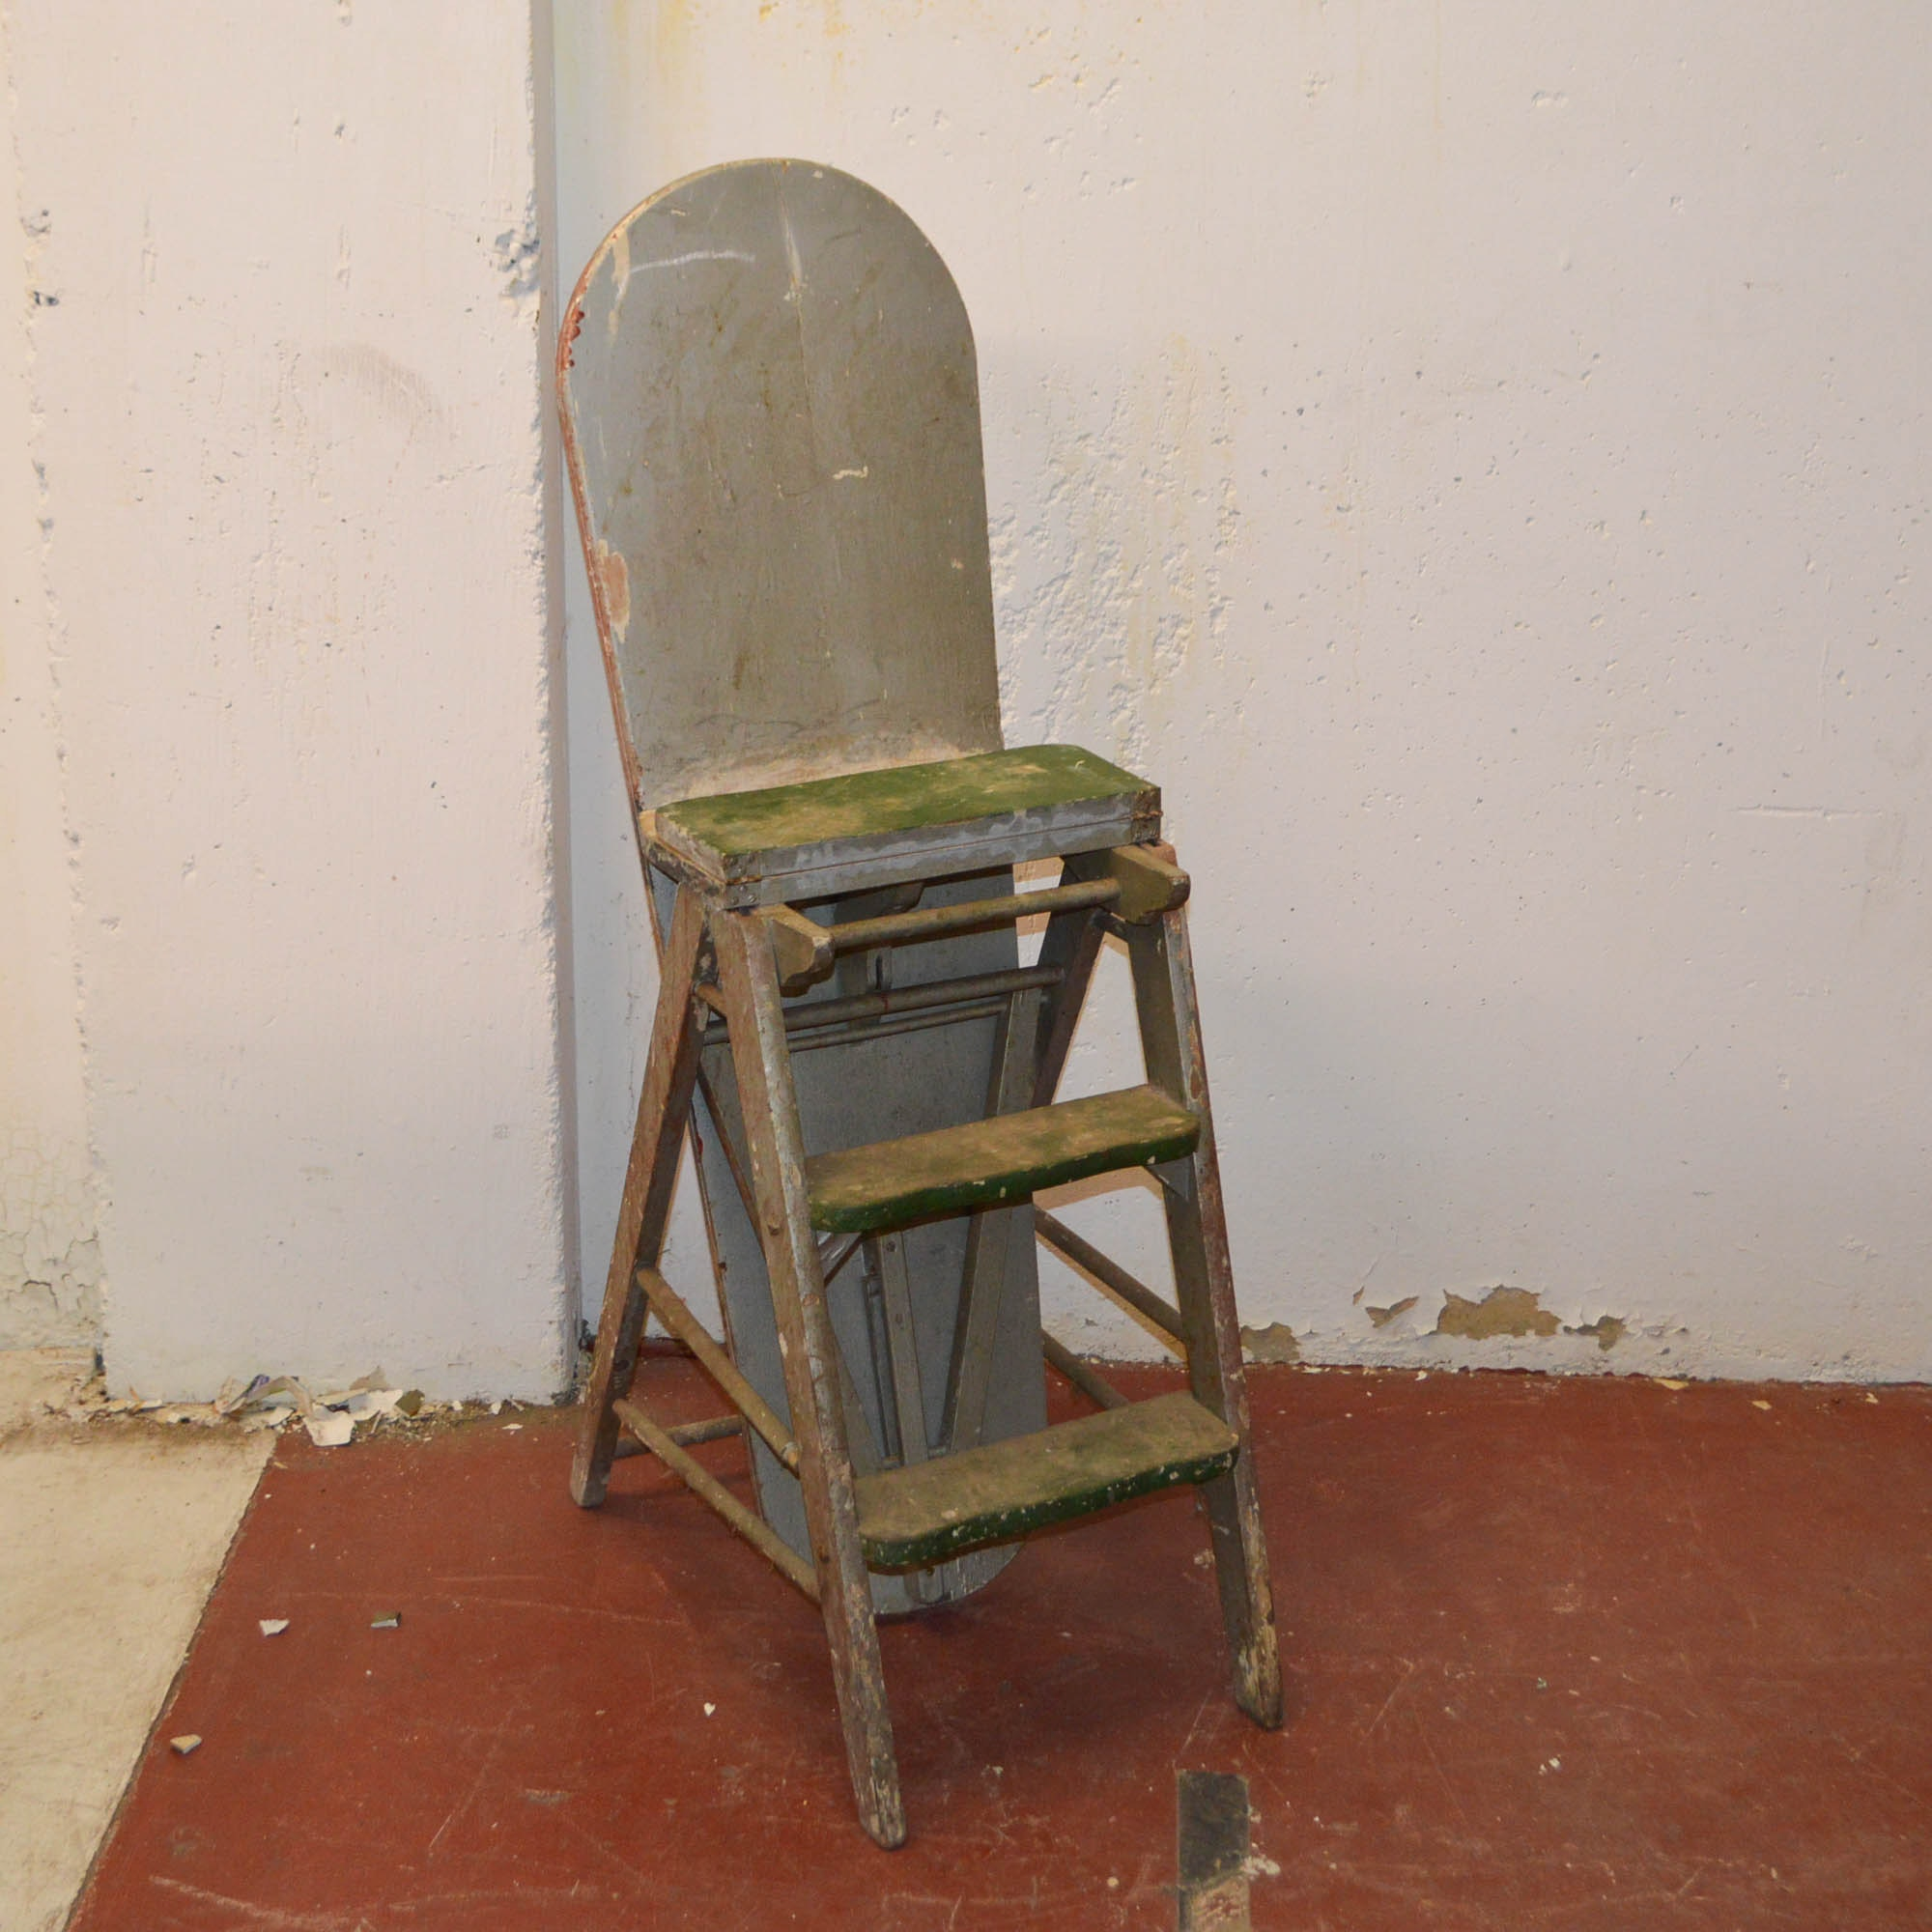 Vintage Convertible Ironing Board Step Stool